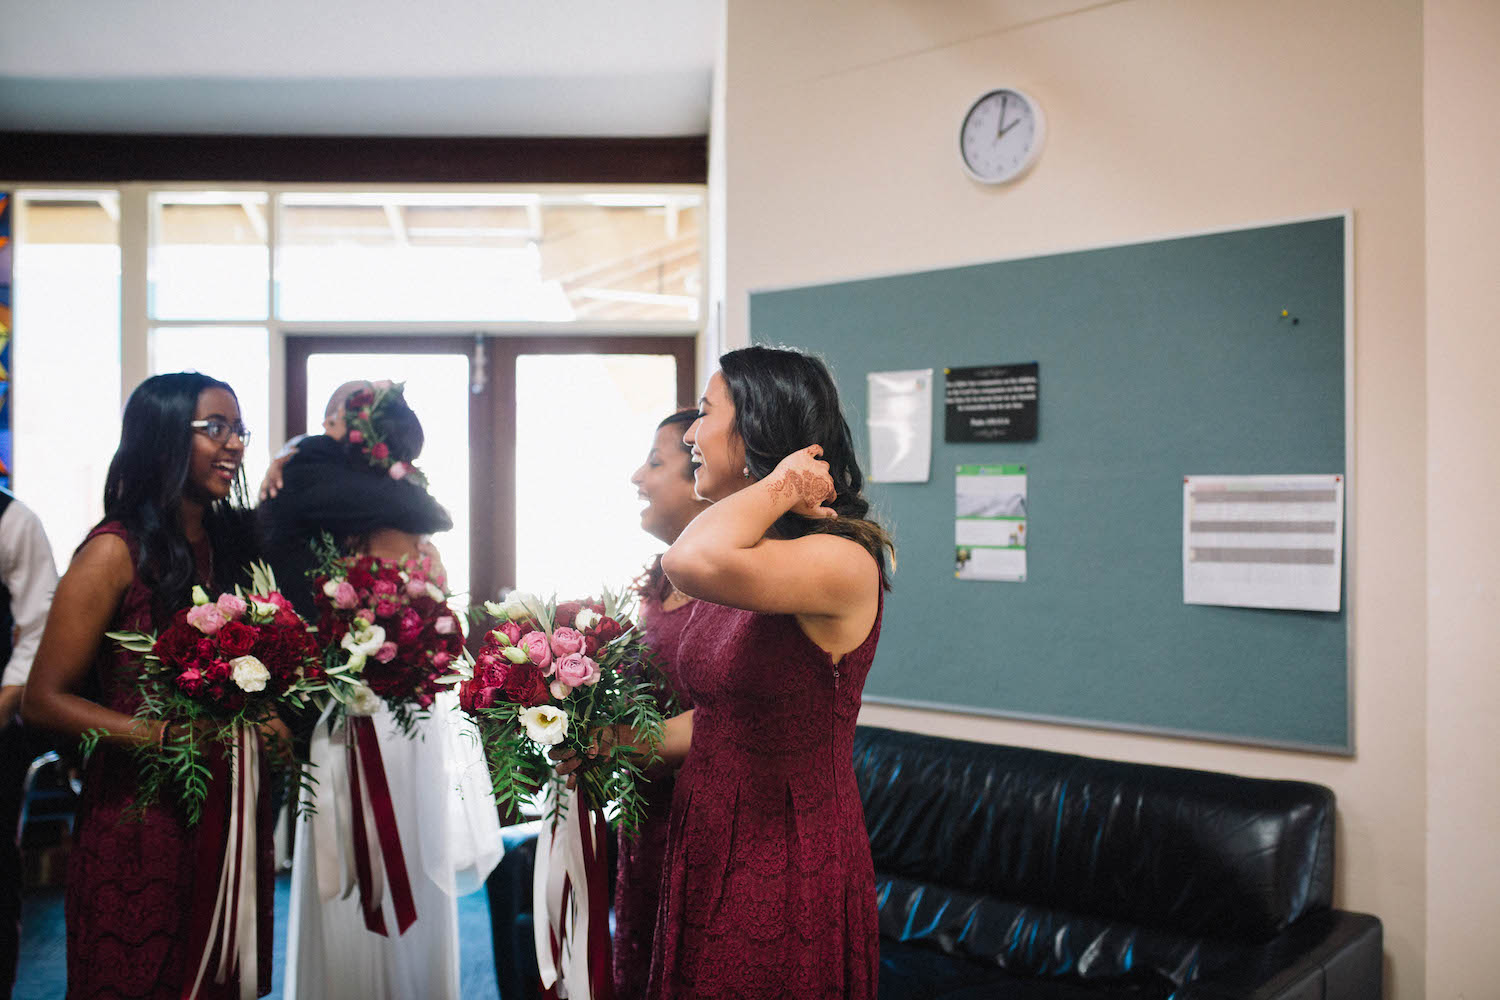 Bridesmaids celebrating after the wedding ceremony at St Matthew's Anglican Church, Subiaco.